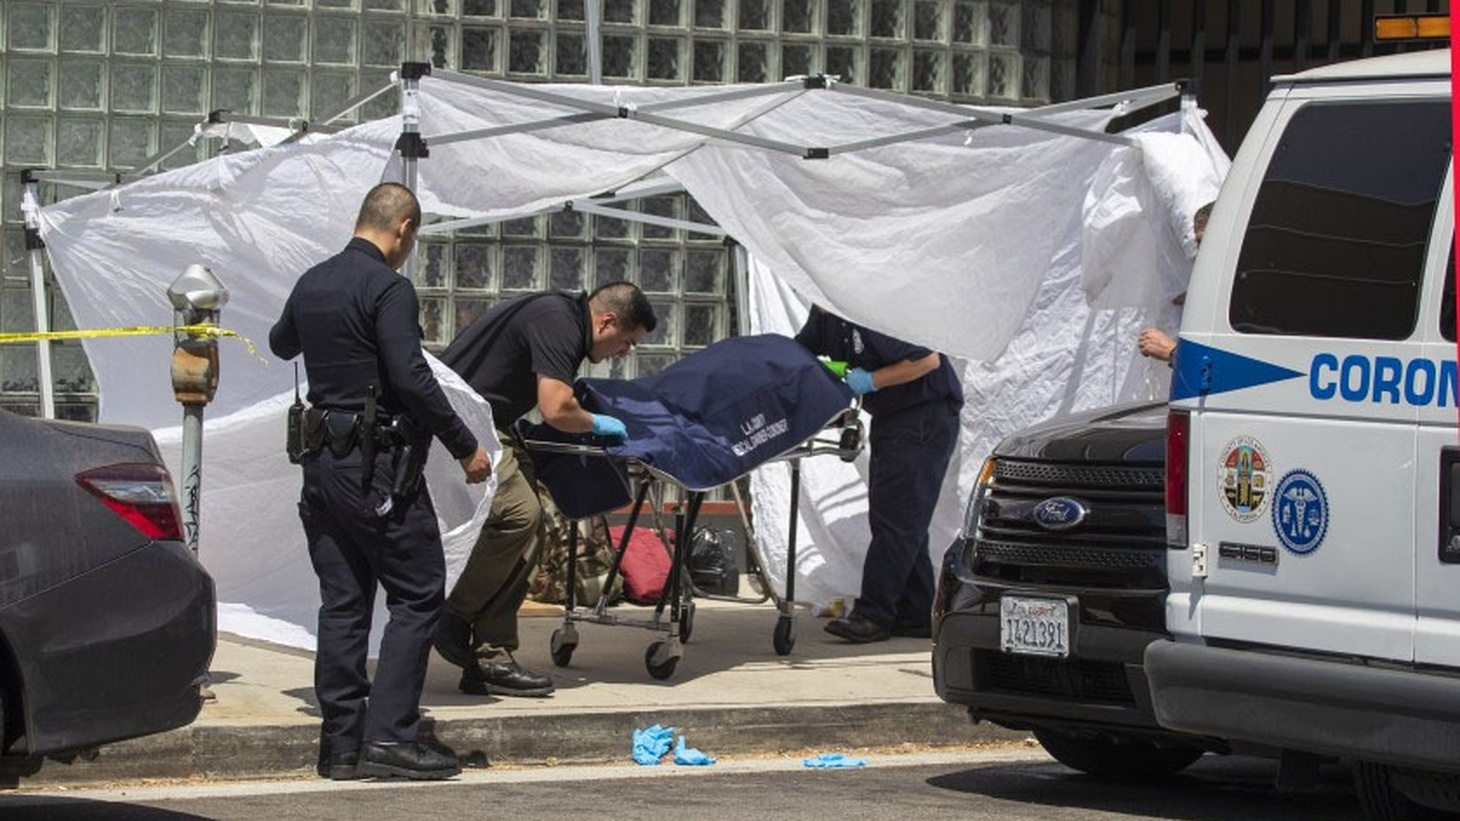 Coroner's officials remove the body of a homeless man found on the sidewalk at Massachusetts Avenue and Sepulveda Boulevard in Los Angeles on Sept. 1, 2019.